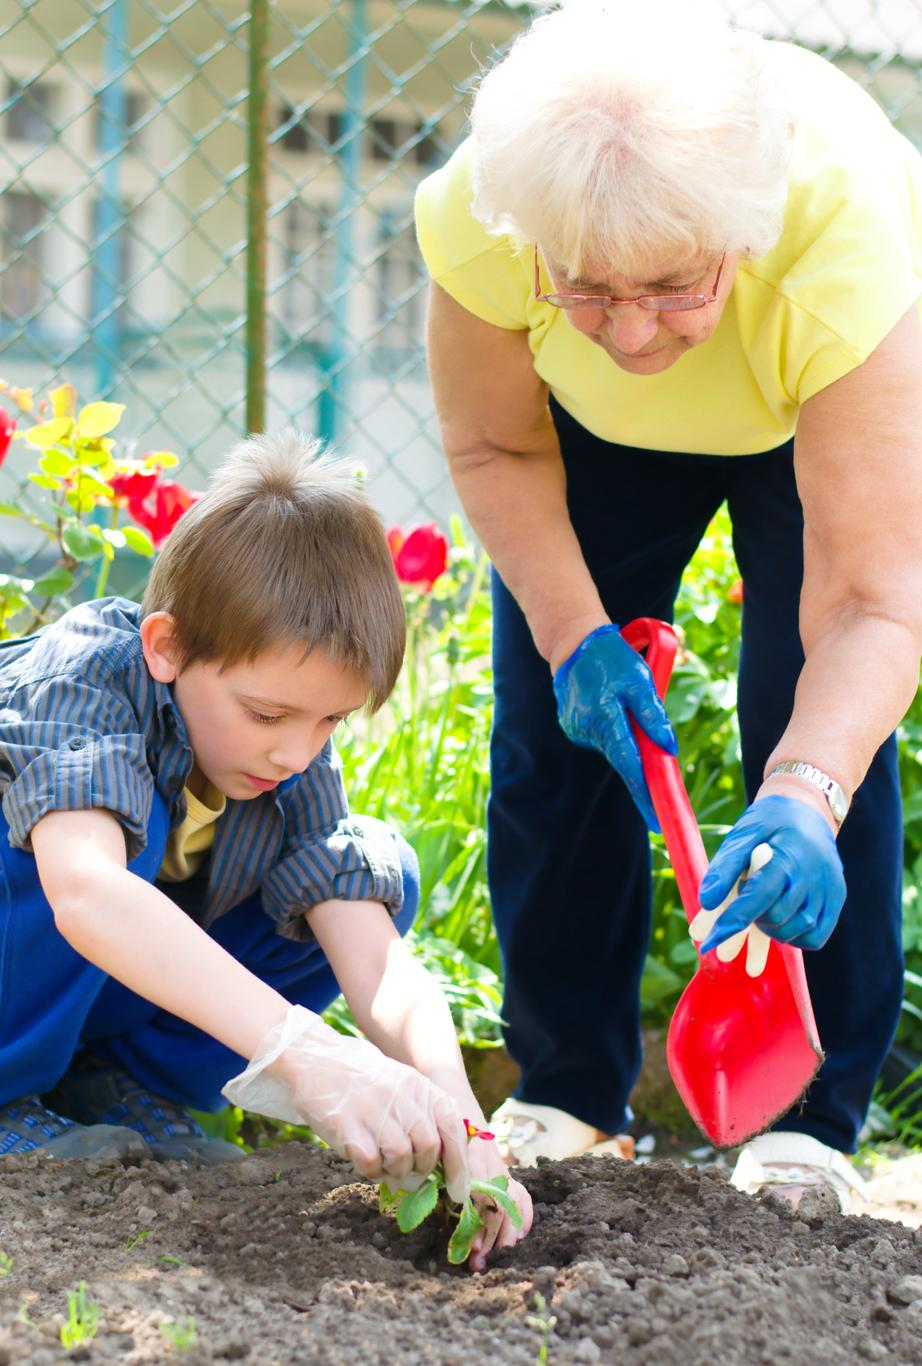 Grandmother and grandson planting flowers